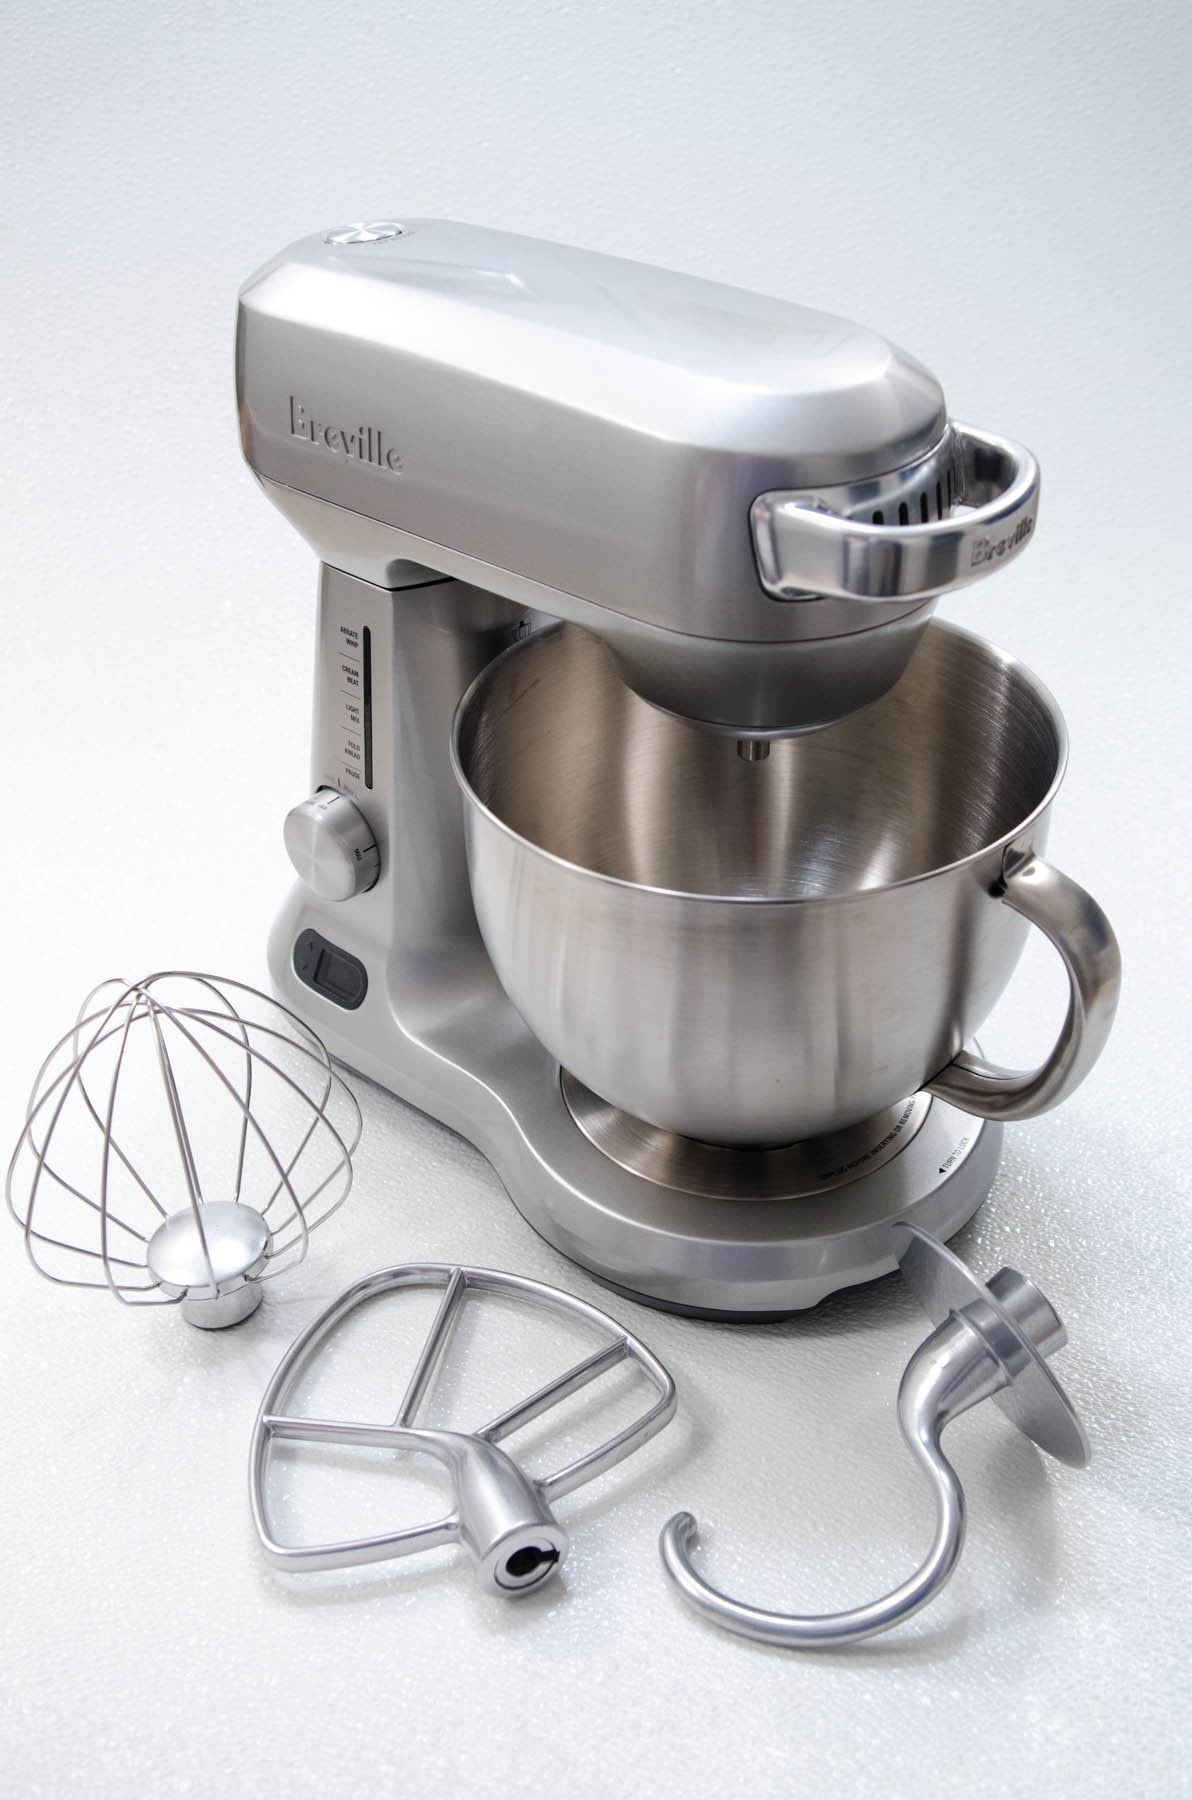 Six Month Breville Stand Mixer Review Pastries Like A Pro